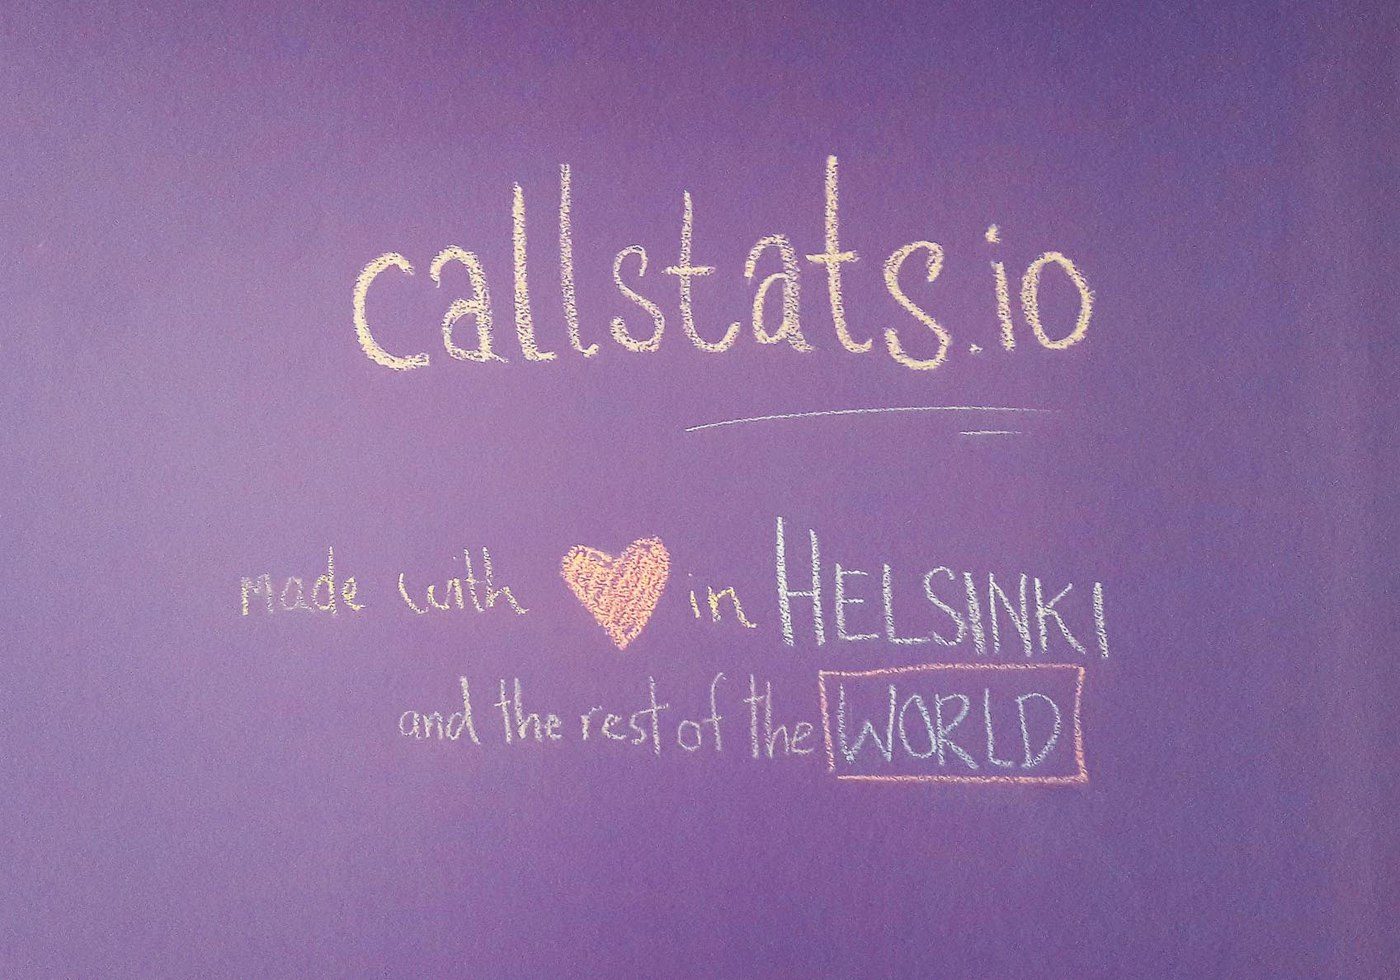 callstats.io: made with heart in helsinki and the rest of the world.